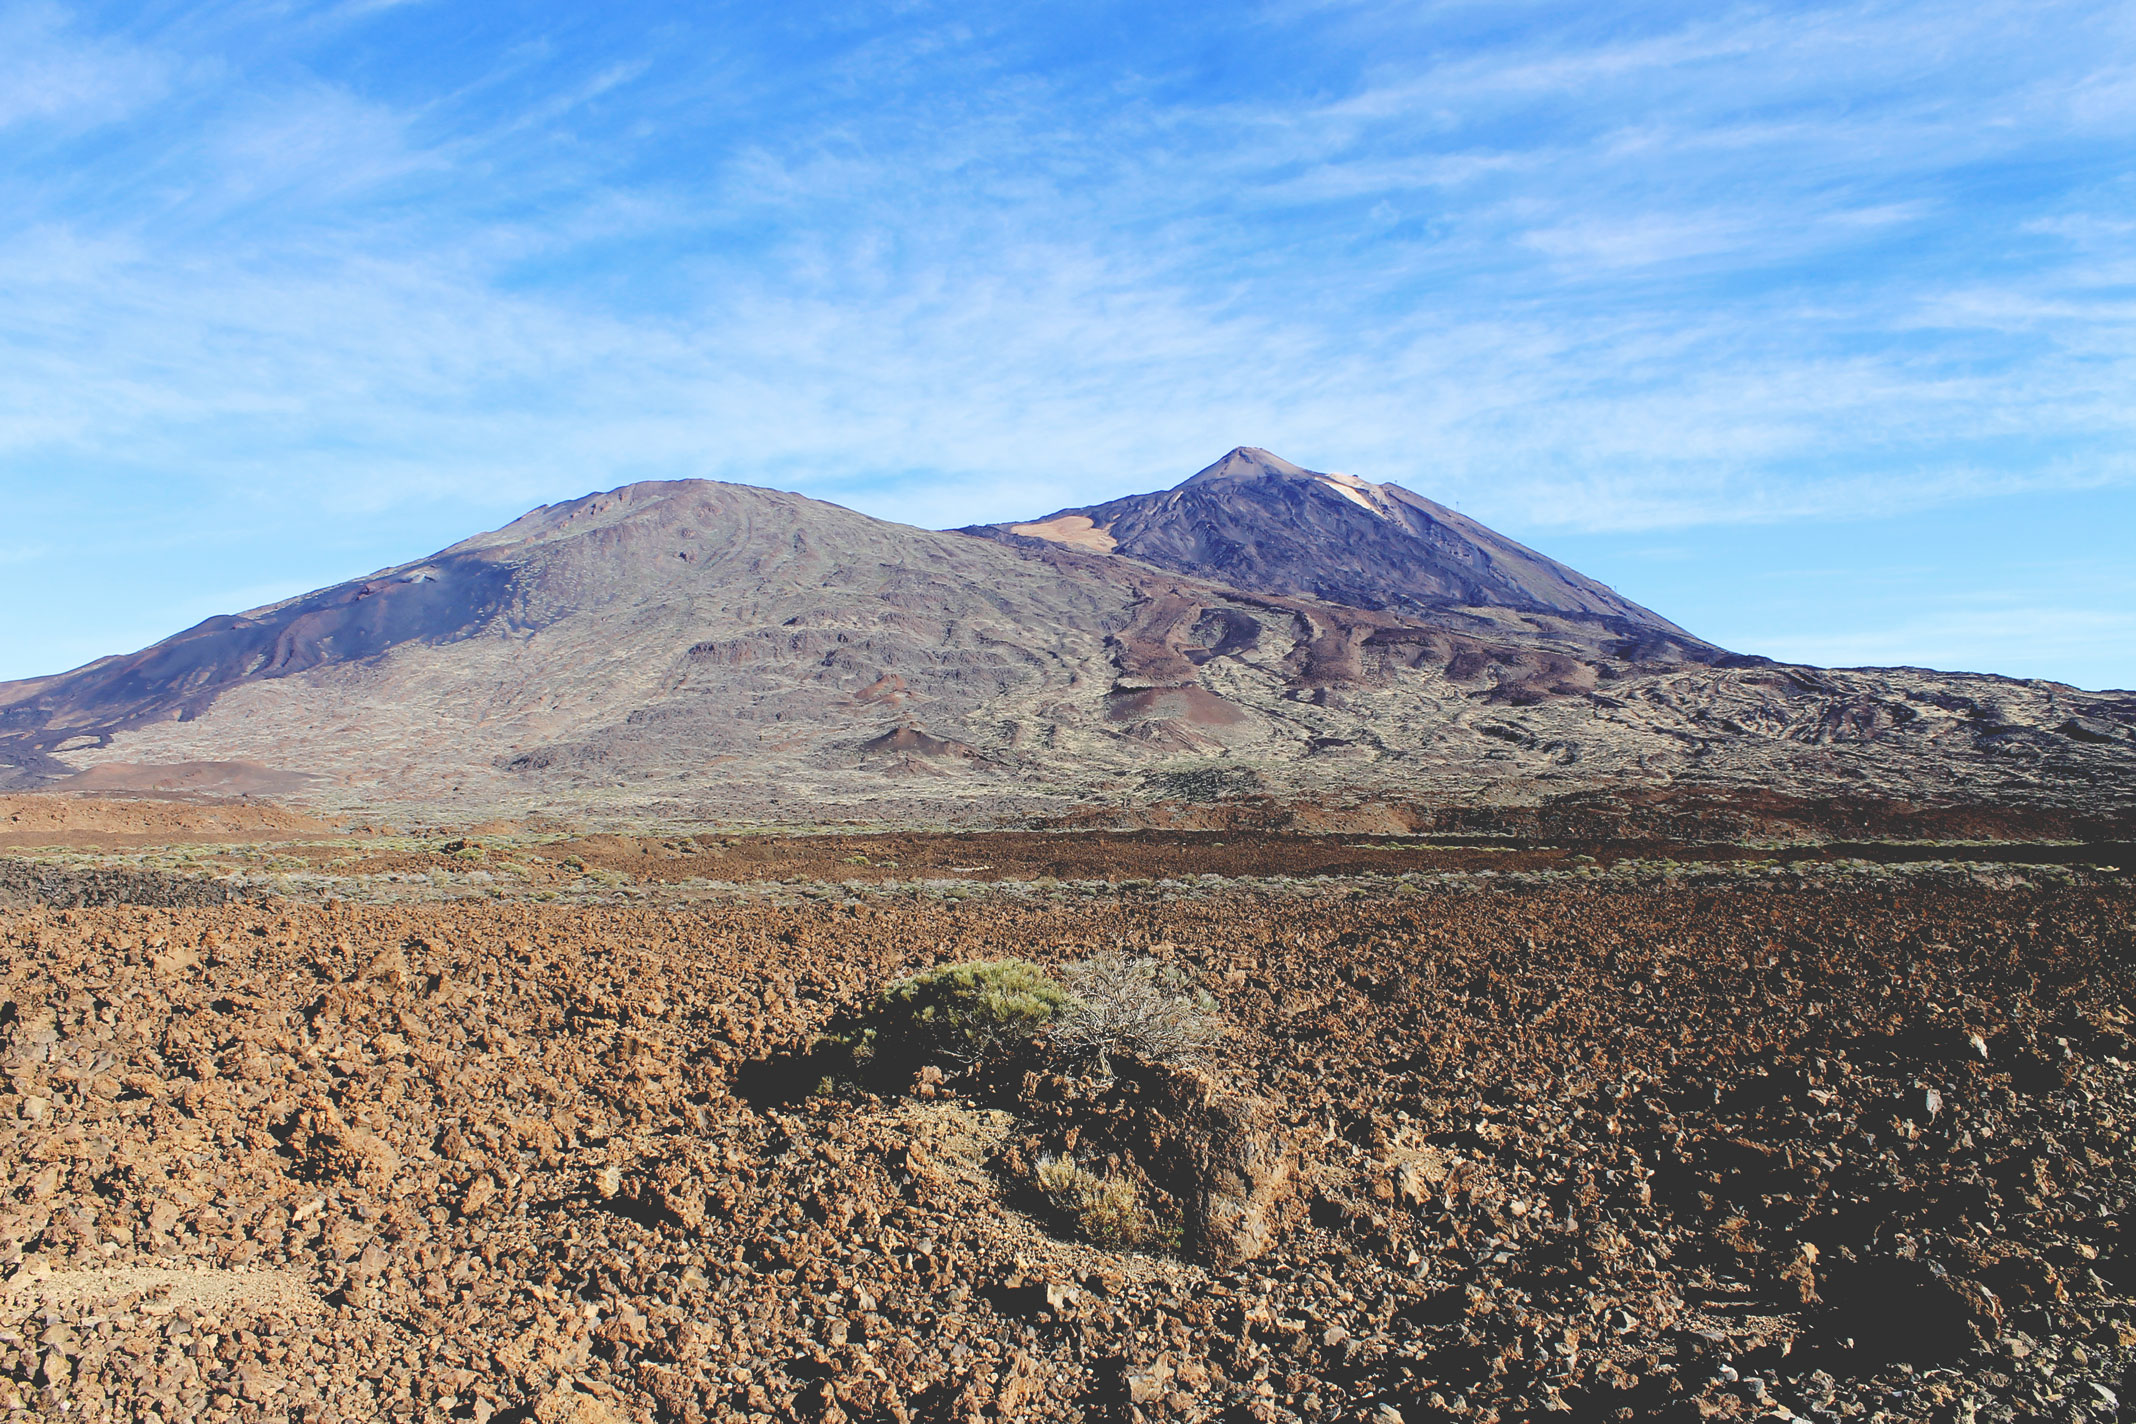 Styleat30 Travel - Teide Volcano in the Canary Islands - Teide National Park 02